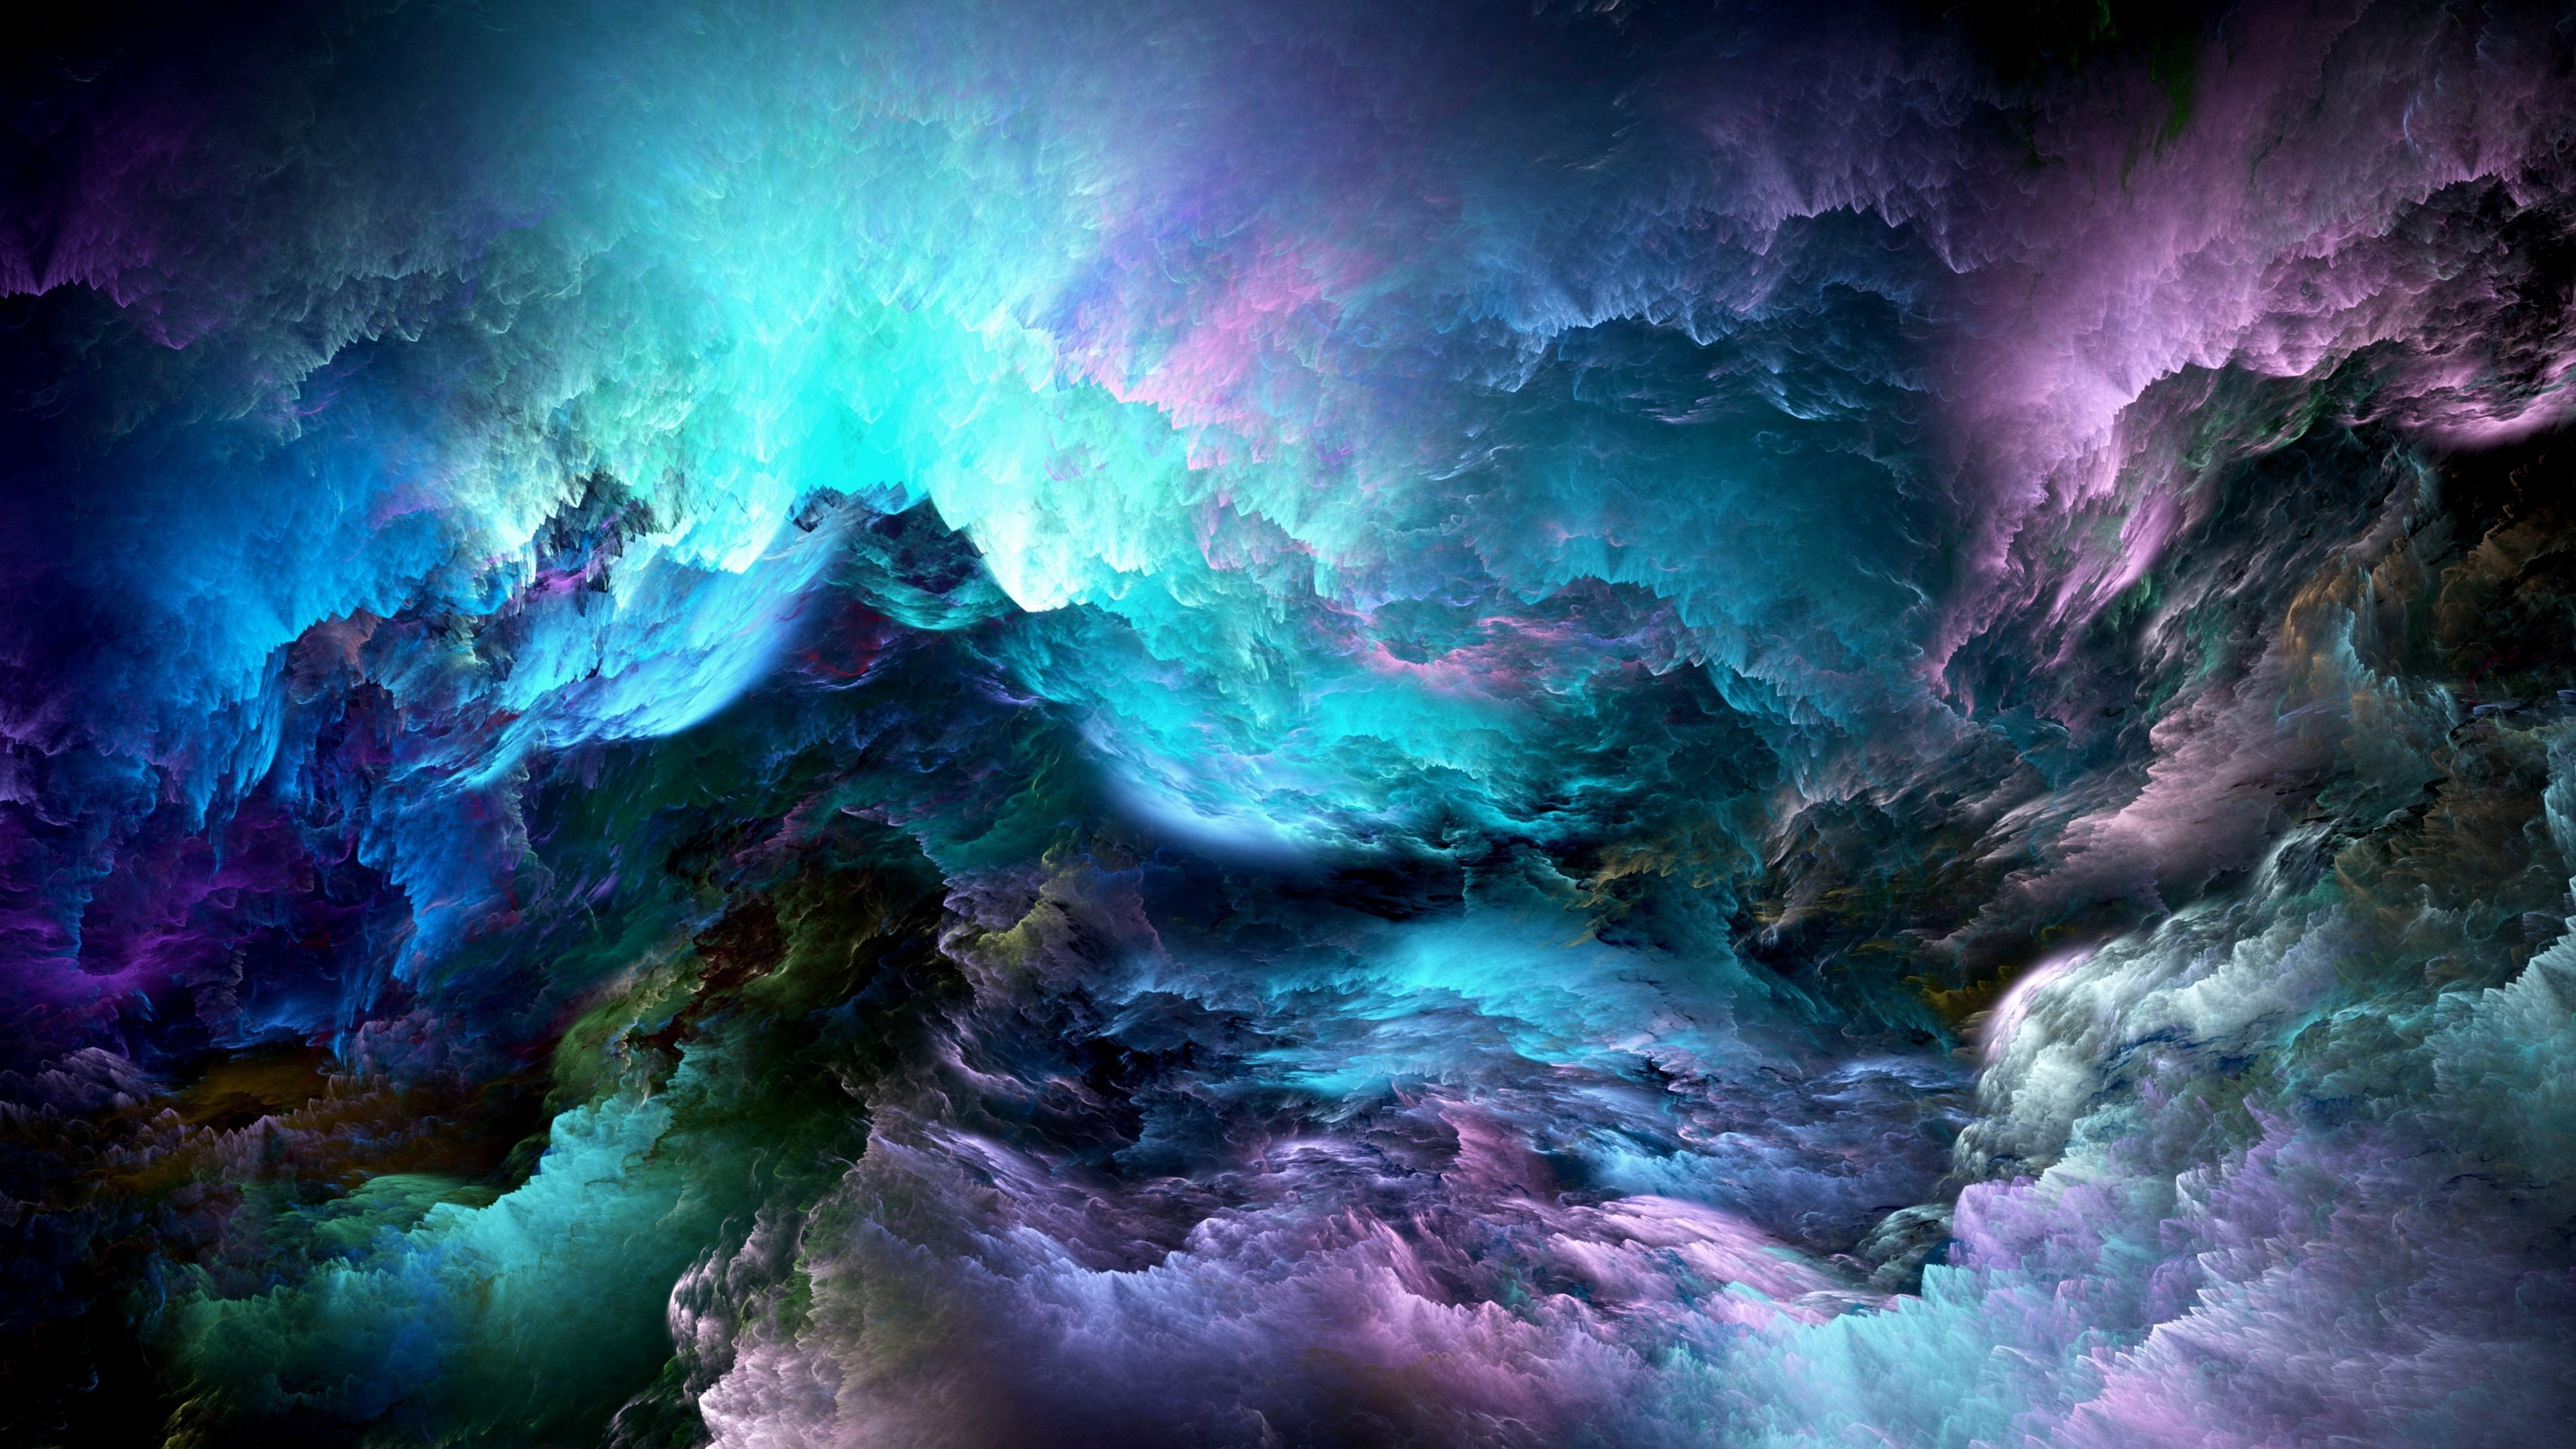 glowing clouds abstract 5k 1539371319 - Glowing Clouds Abstract 5k - hd-wallpapers, glow wallpapers, colorful wallpapers, clouds wallpapers, abstract wallpapers, 5k wallpapers, 4k-wallpapers